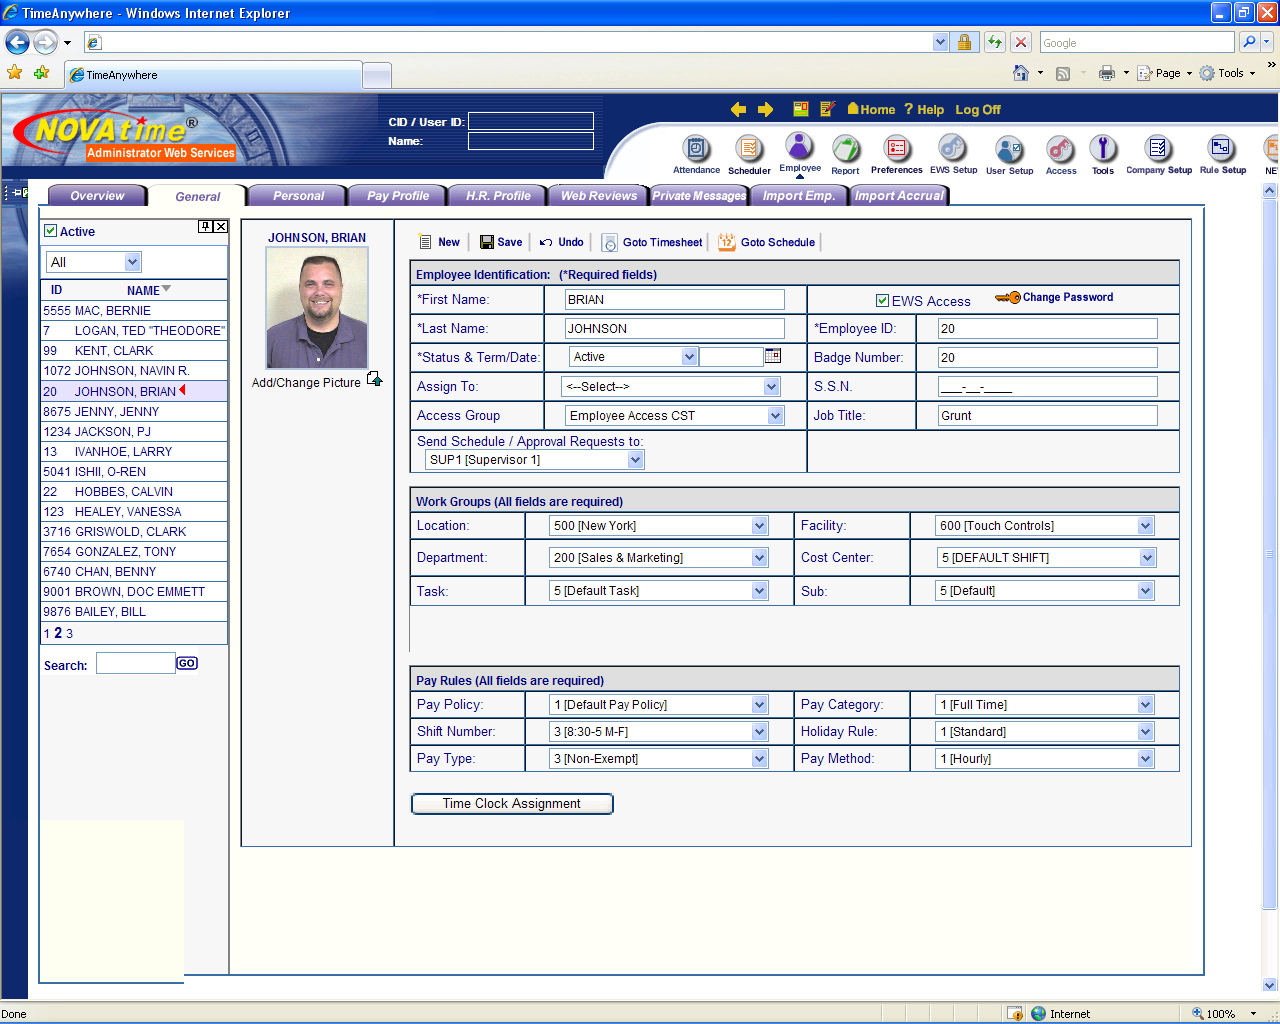 employee management system The dfd level 1 explains how the data is processed and transferred in the ems system.